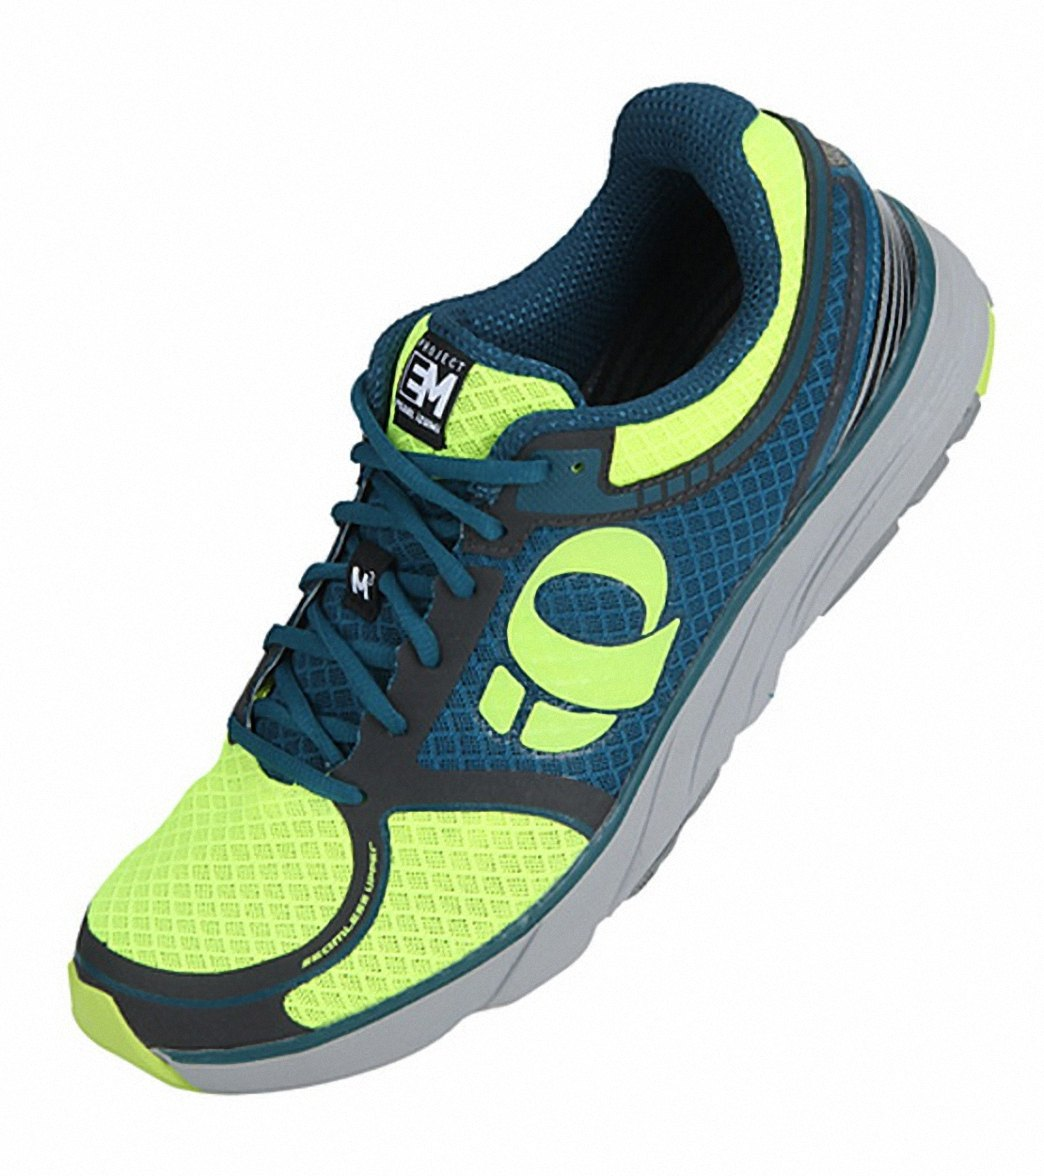 Pearl Izumi Running Shoes Discontinued